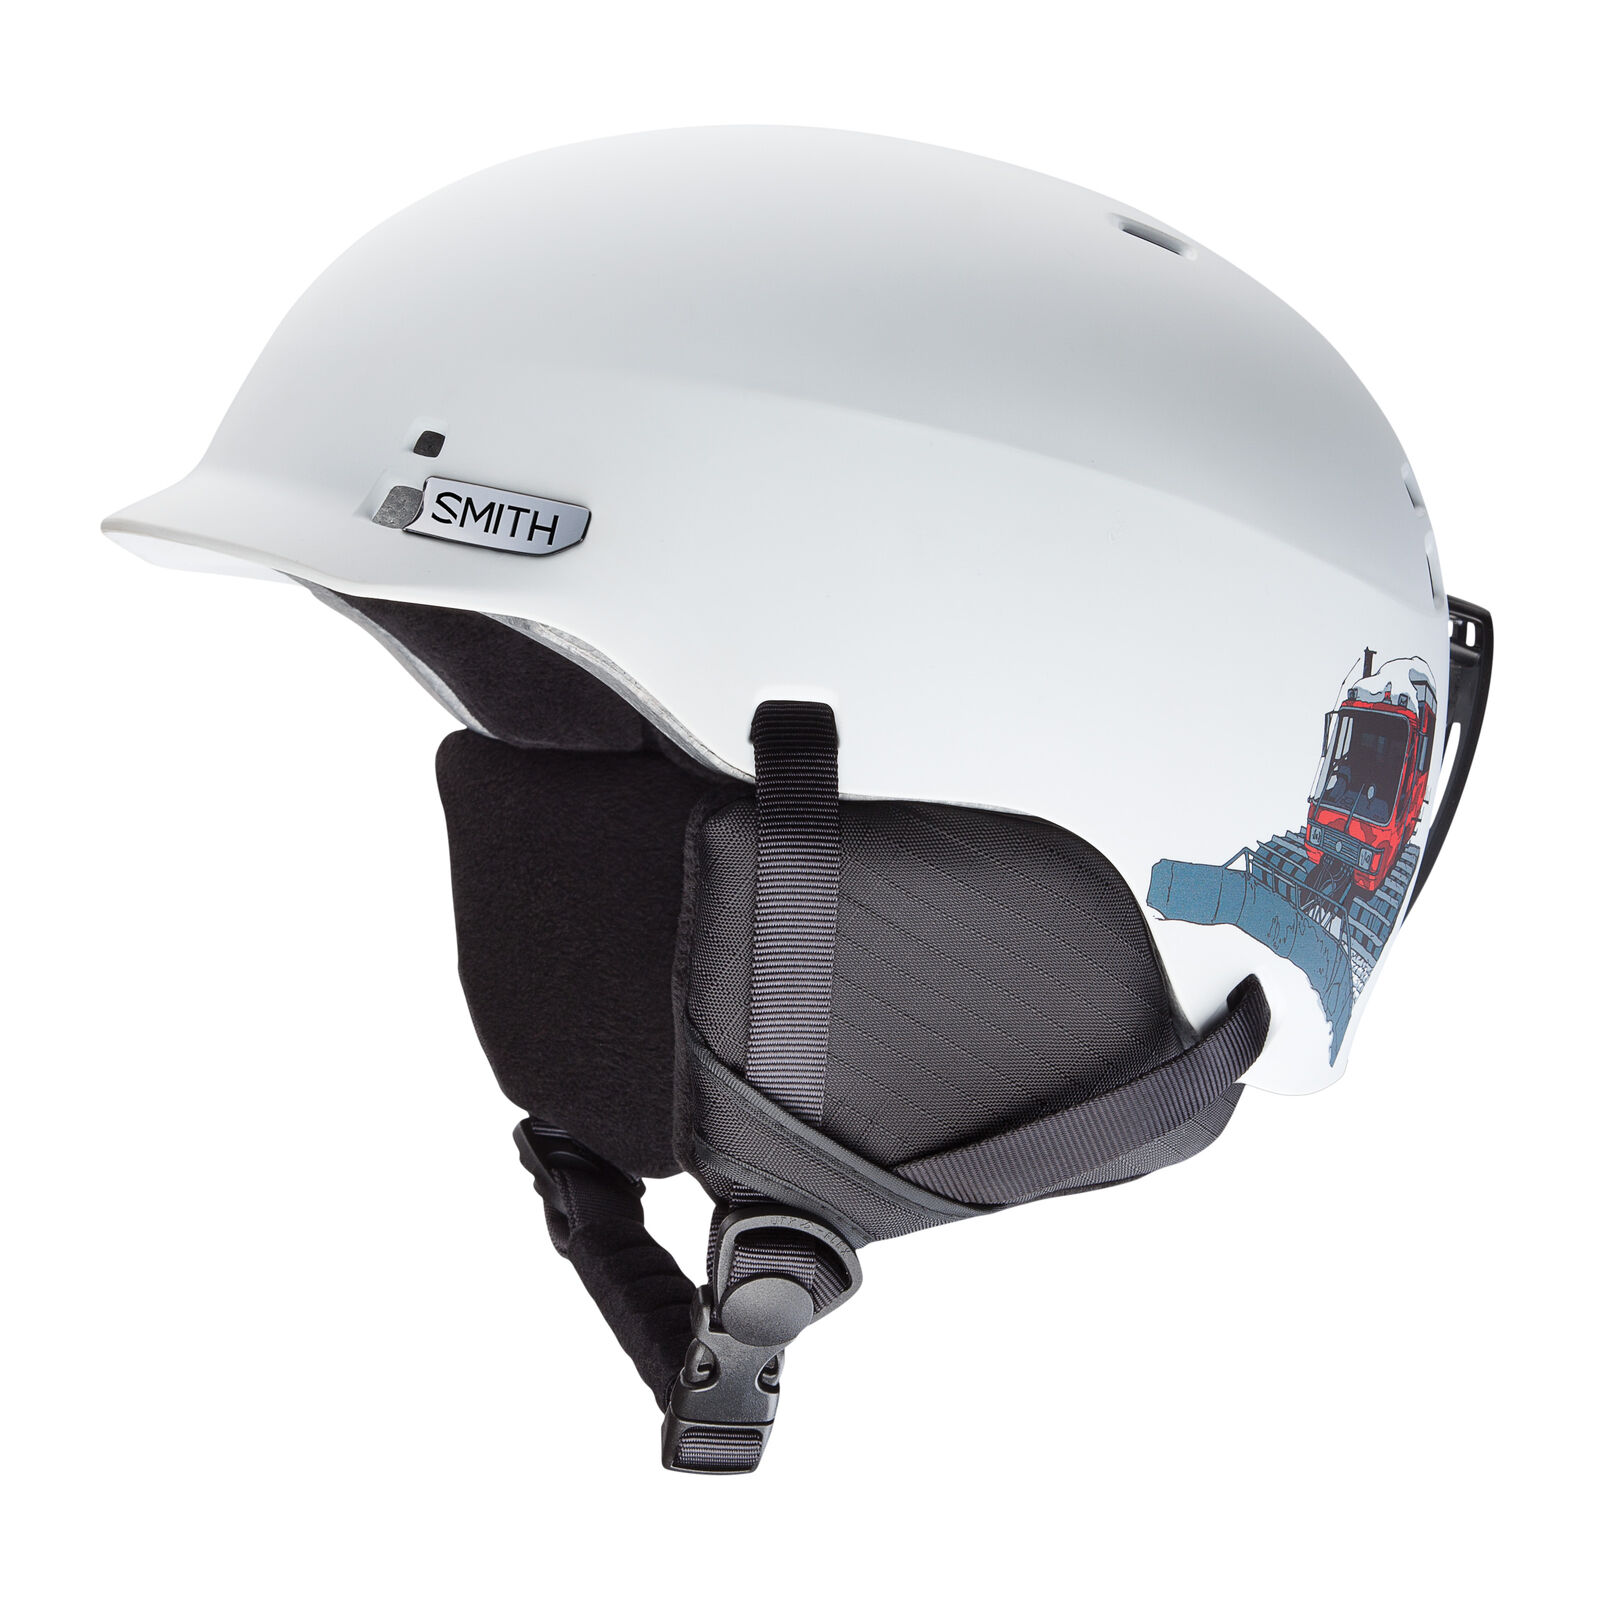 Smith  Casco de Snowboard Esquí Gage Junior whiteo colors Lisos  online-shop